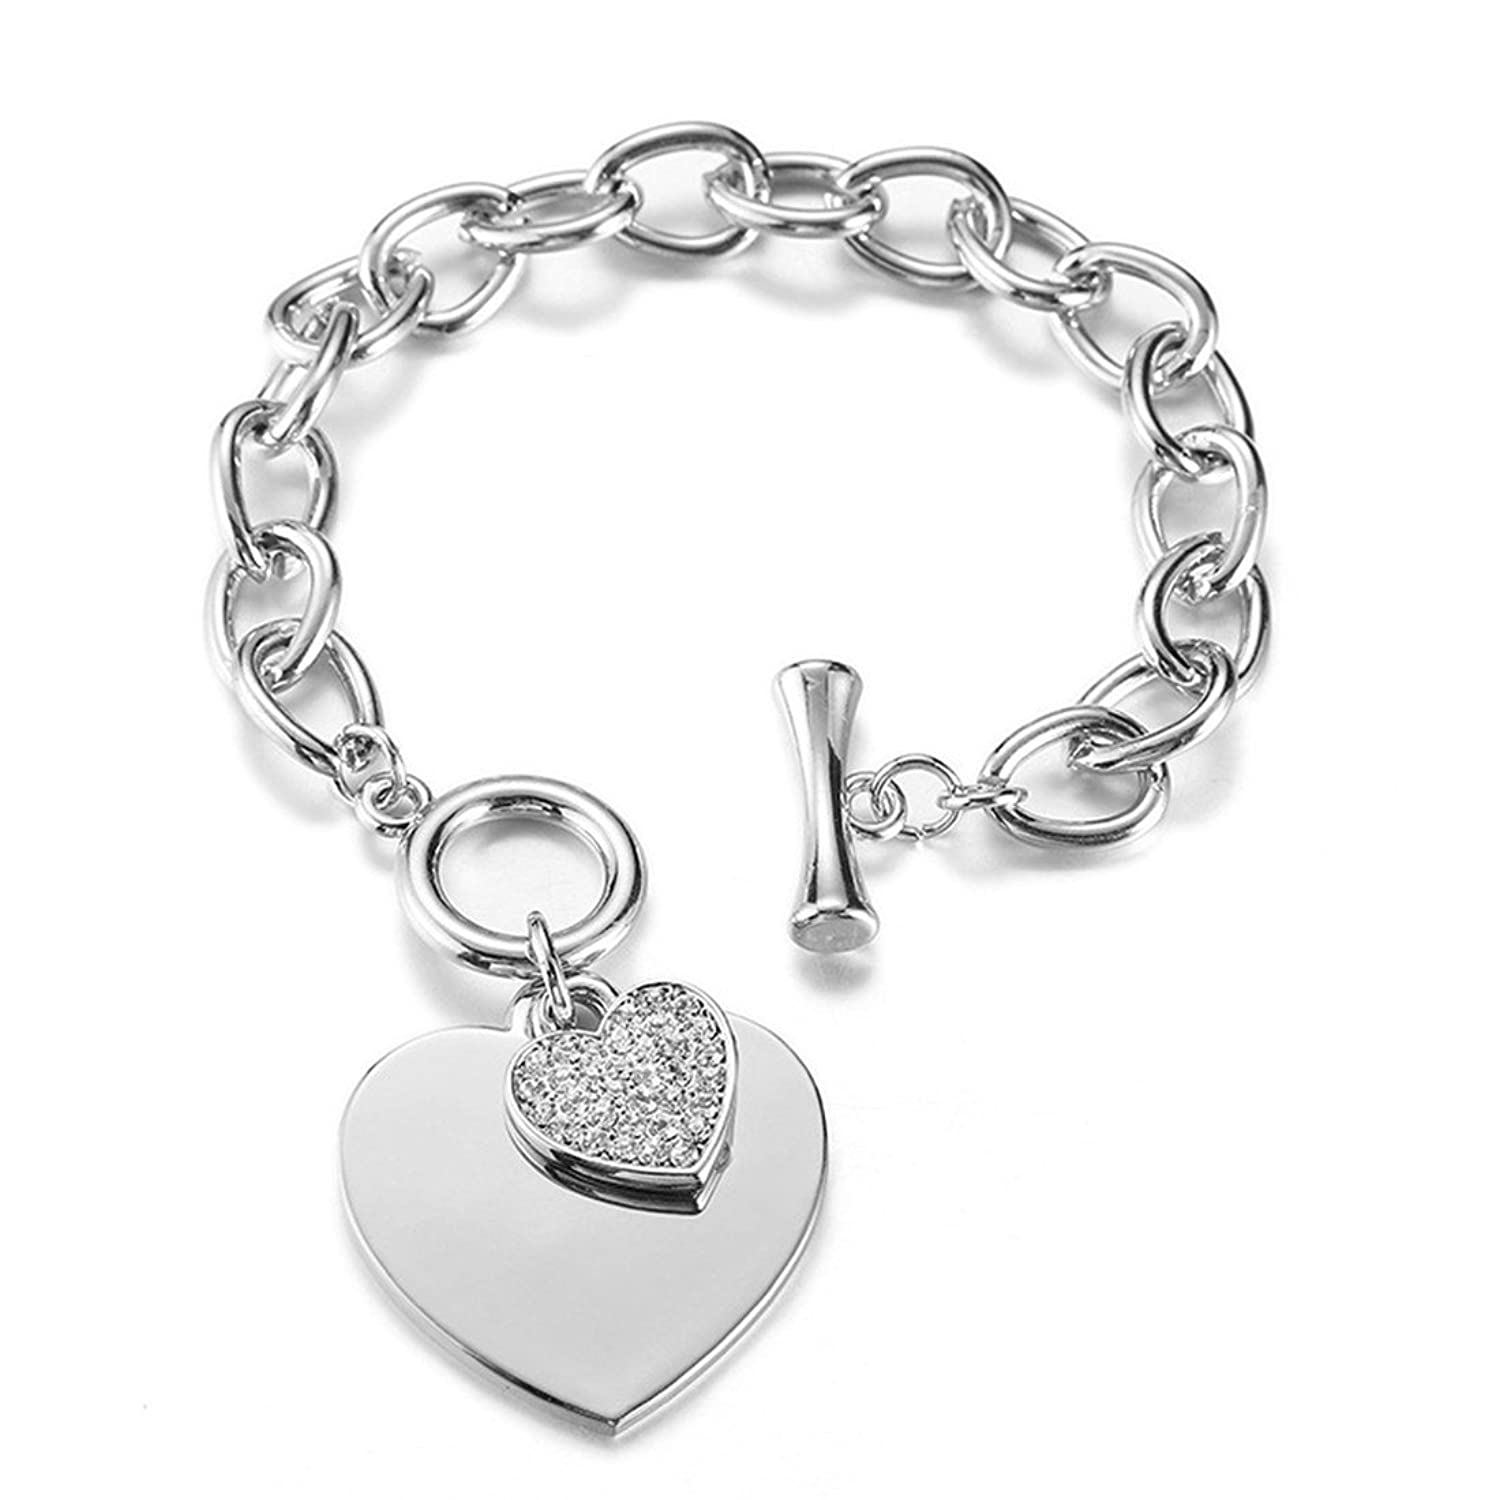 b7a6a2bdb Amazon.com: Mymate Stainless Steel Womens Charm Bracelets for Teen Girls  Link Heart Bracelets, 7 inches: Jewelry